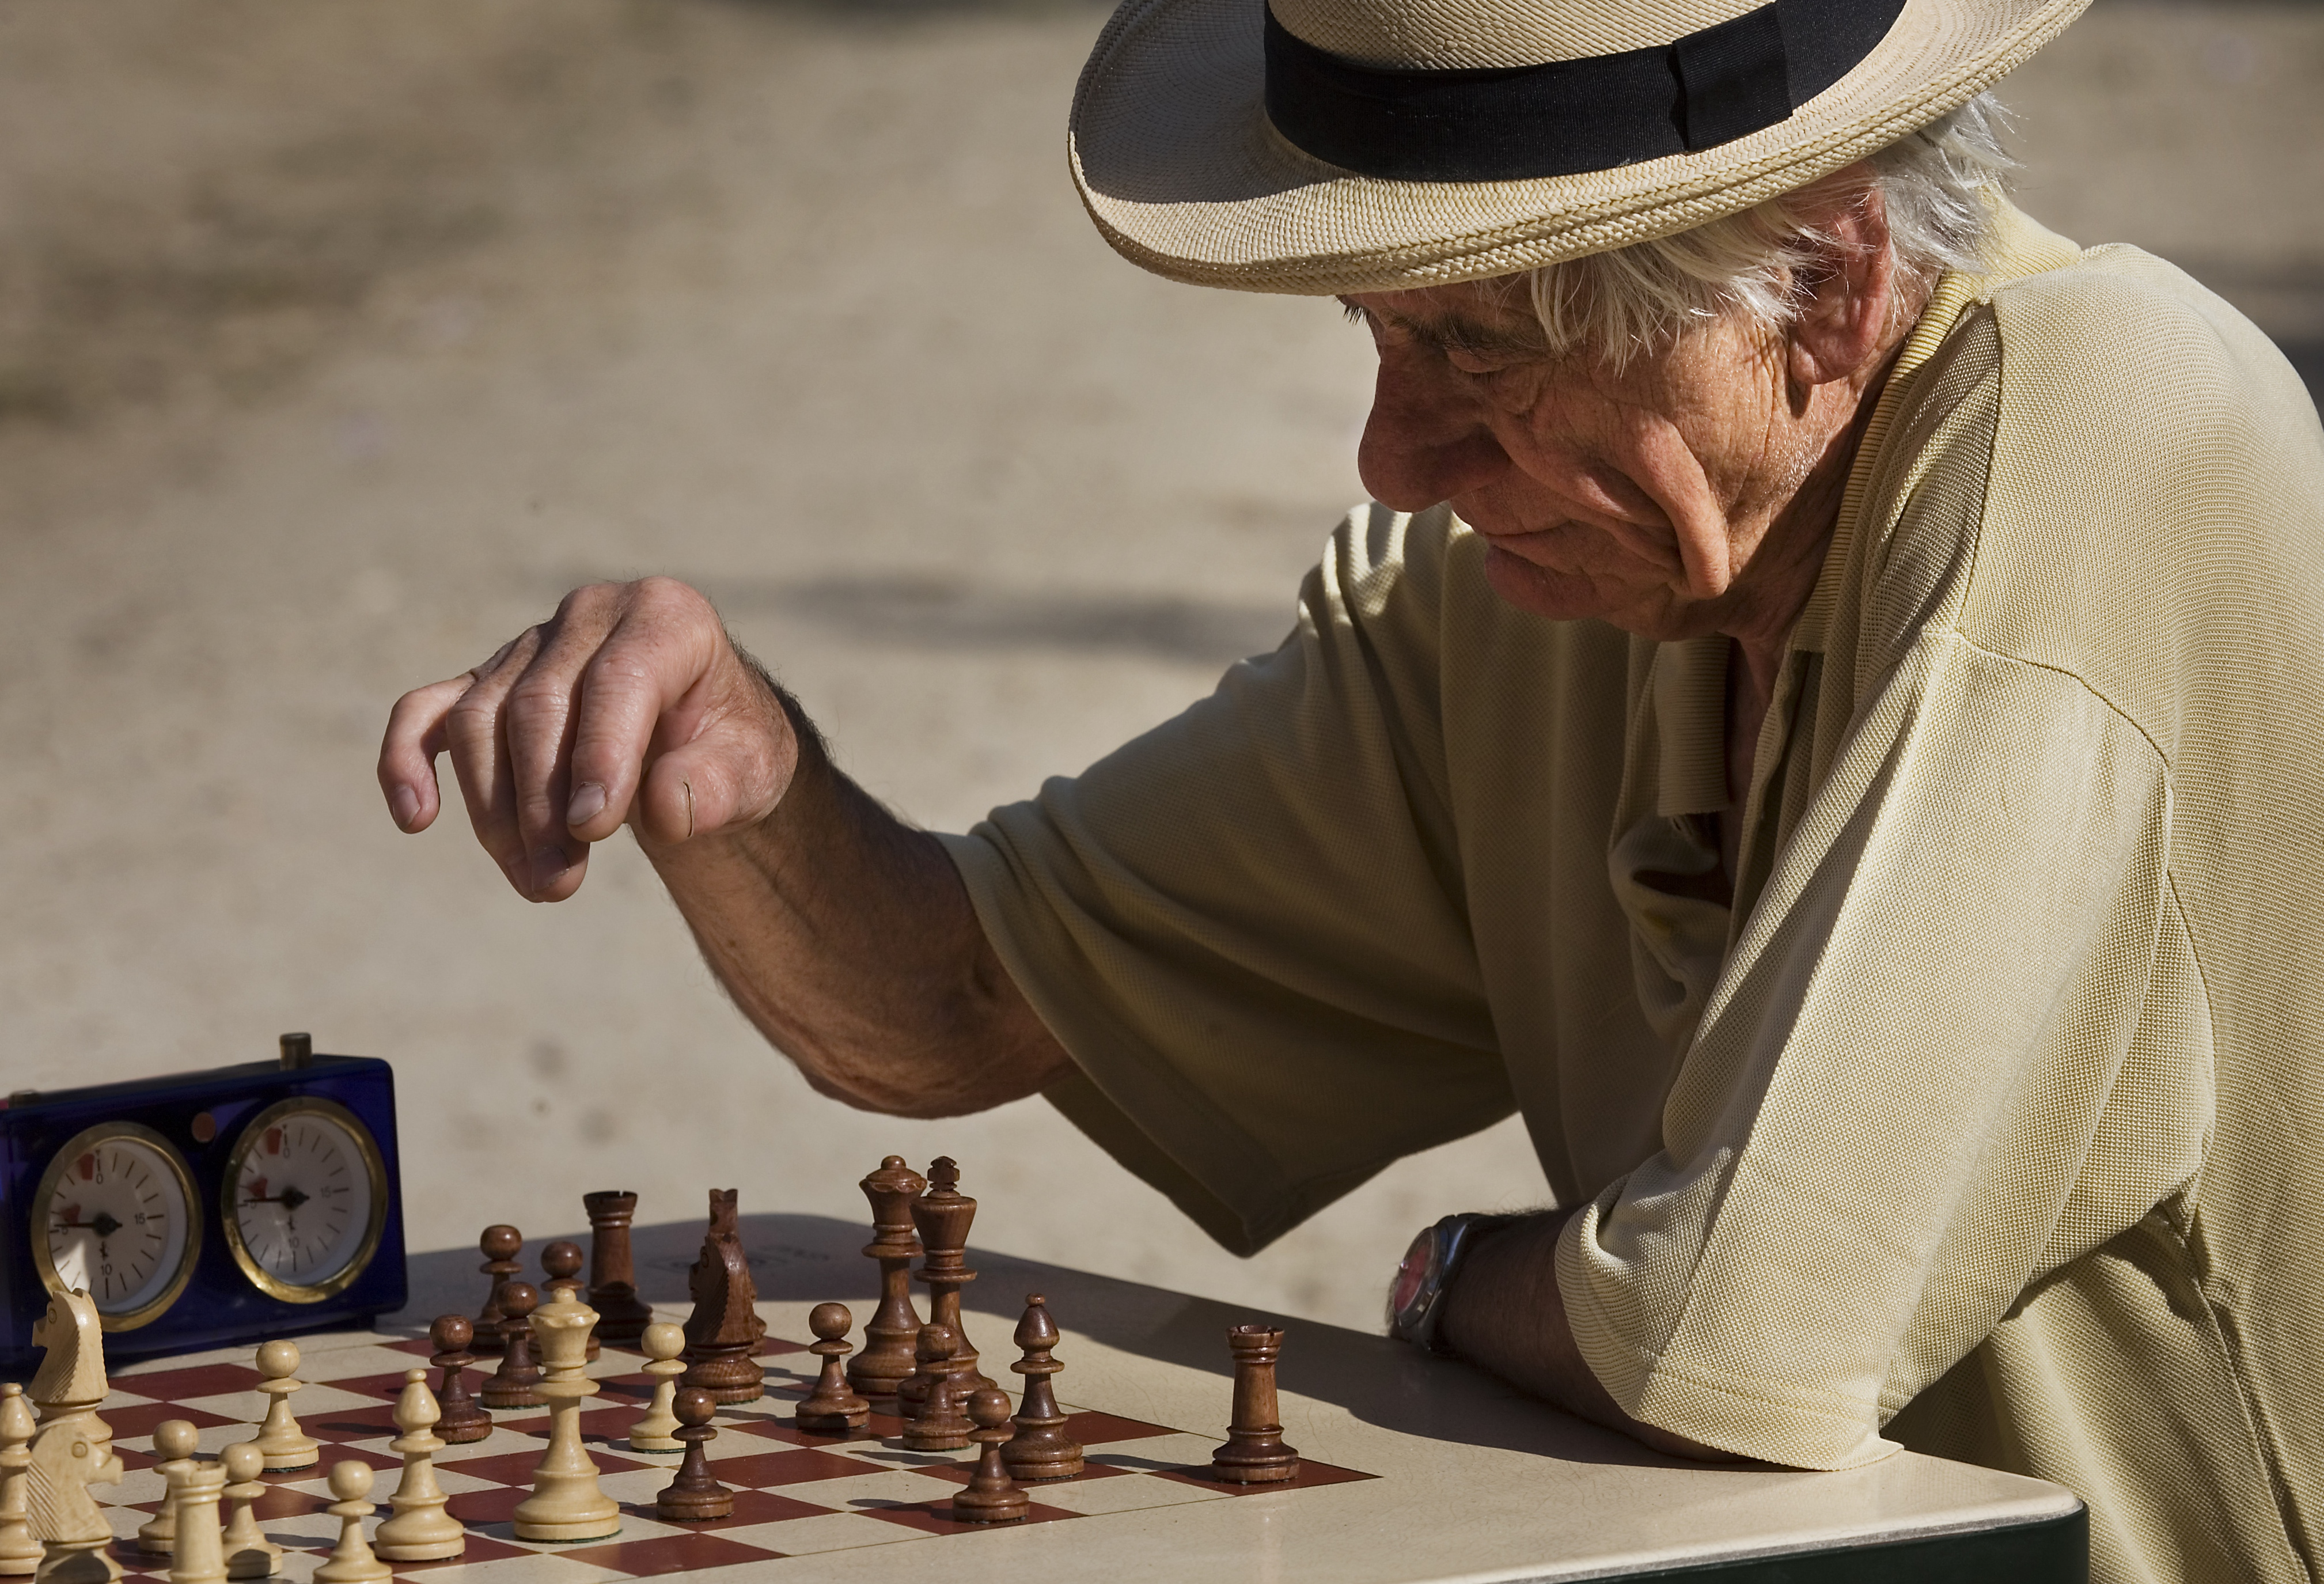 File:Paris - Playing chess at the Jardins du Luxembourg ...